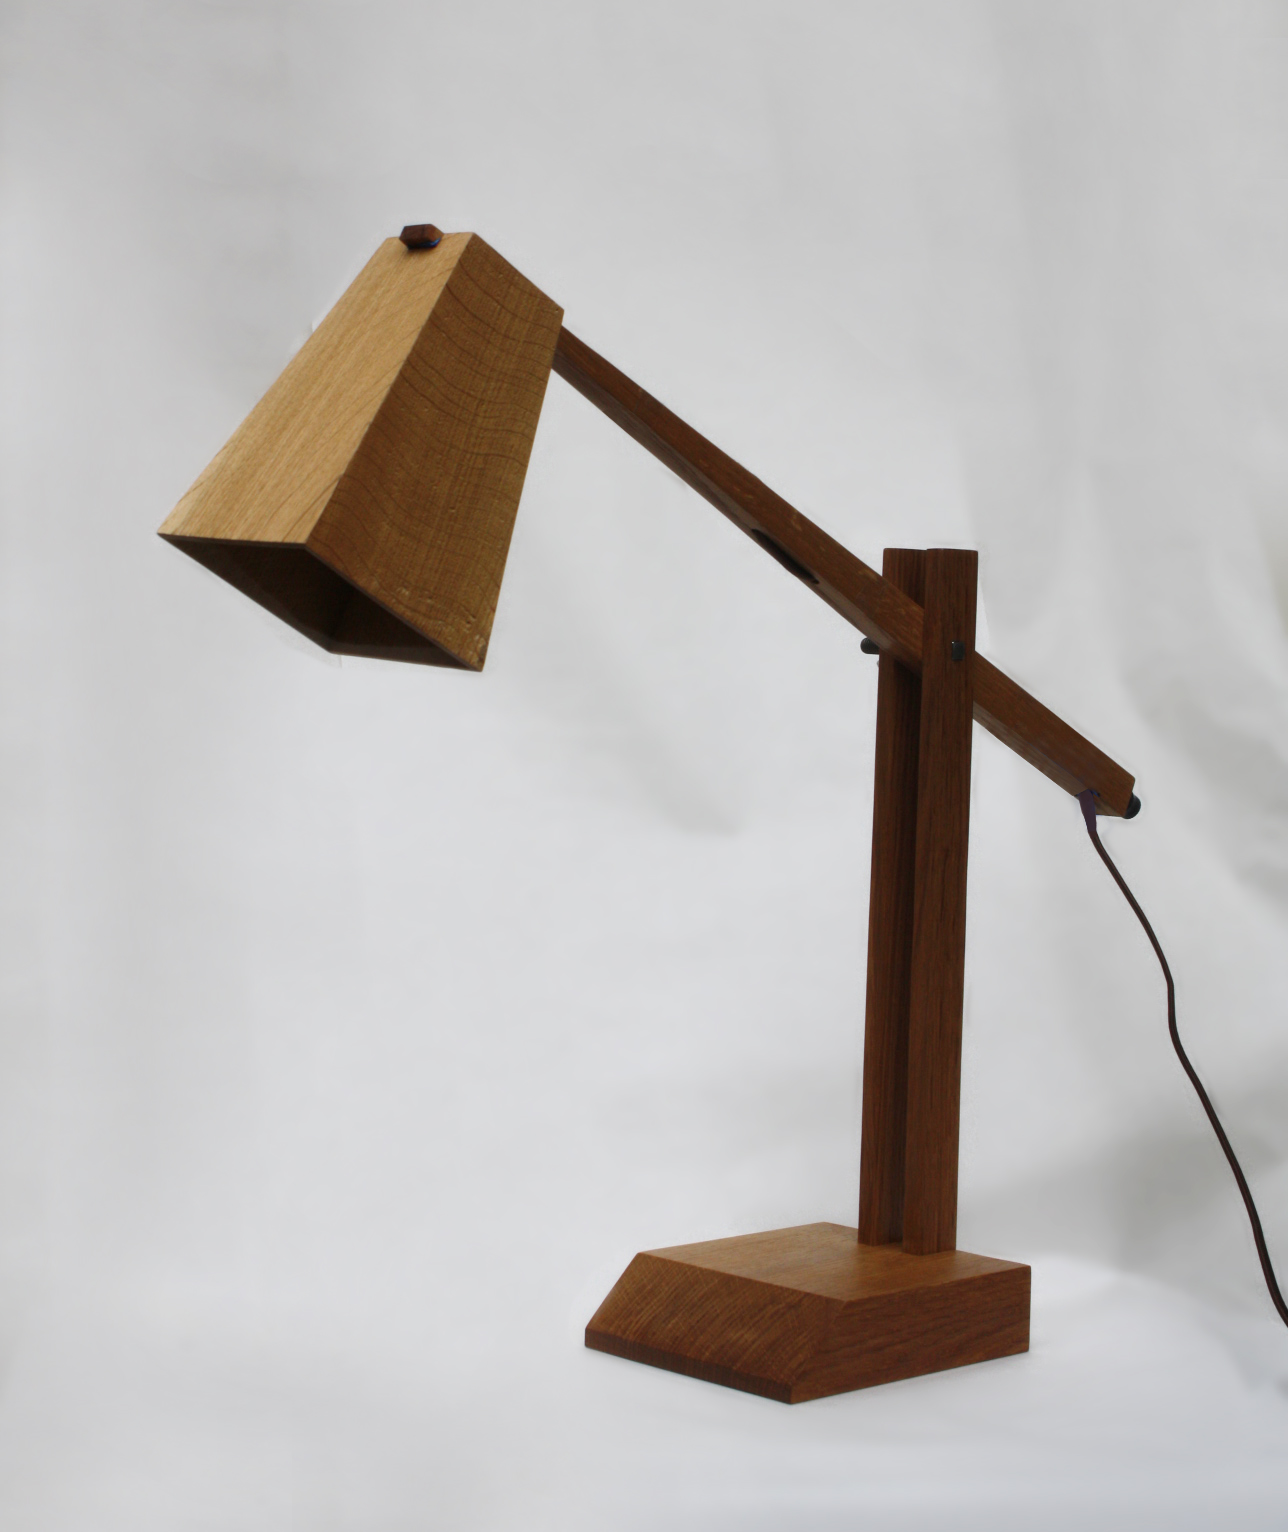 making wooden table lamps | Moondel Woodplan